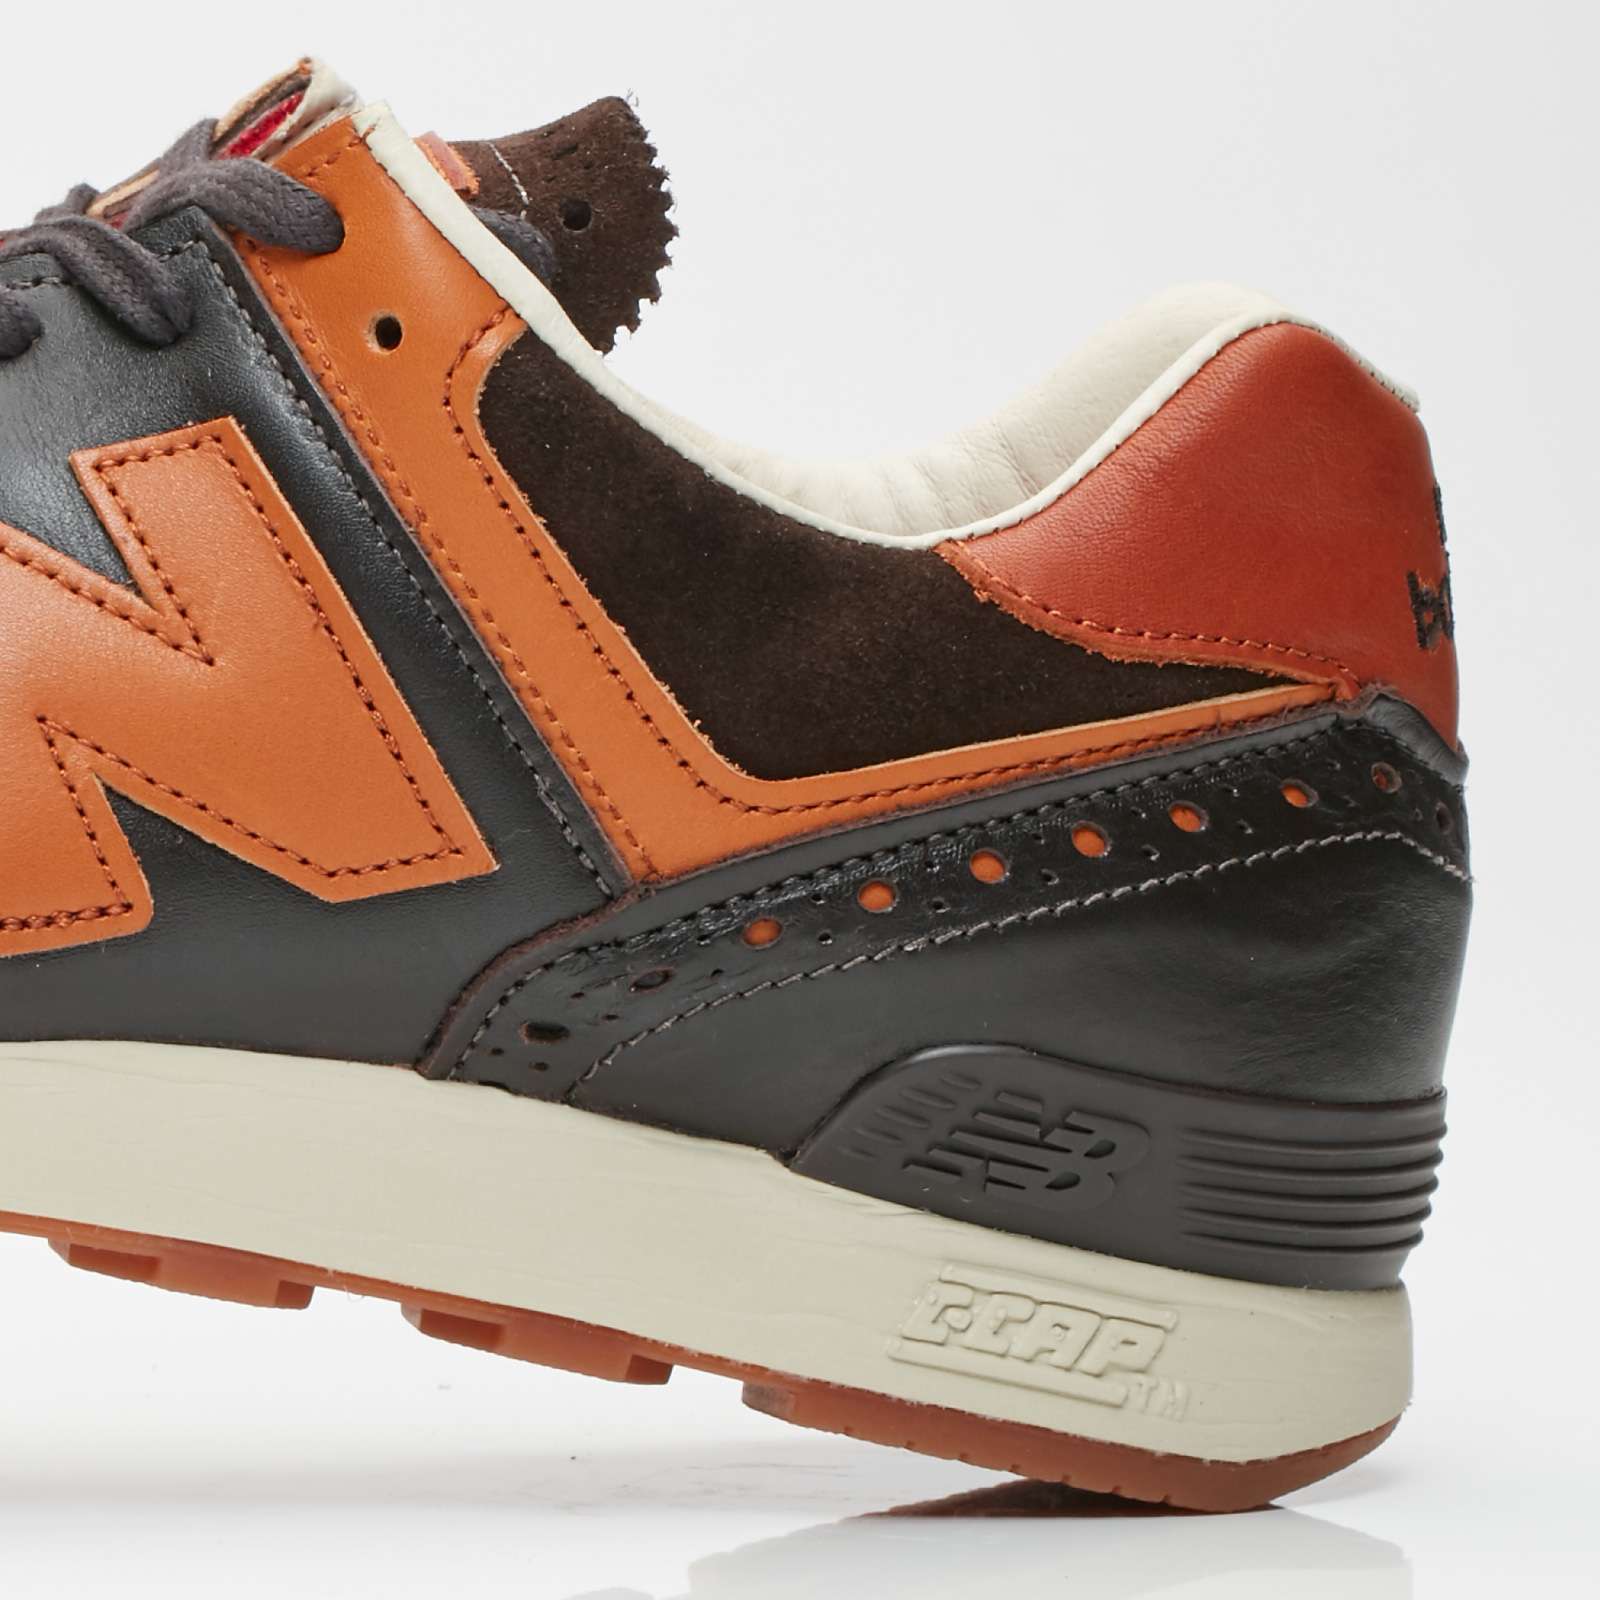 new style 97a1a c8187 New Balance M576 x Grenson - M576gsn - Sneakersnstuff ...